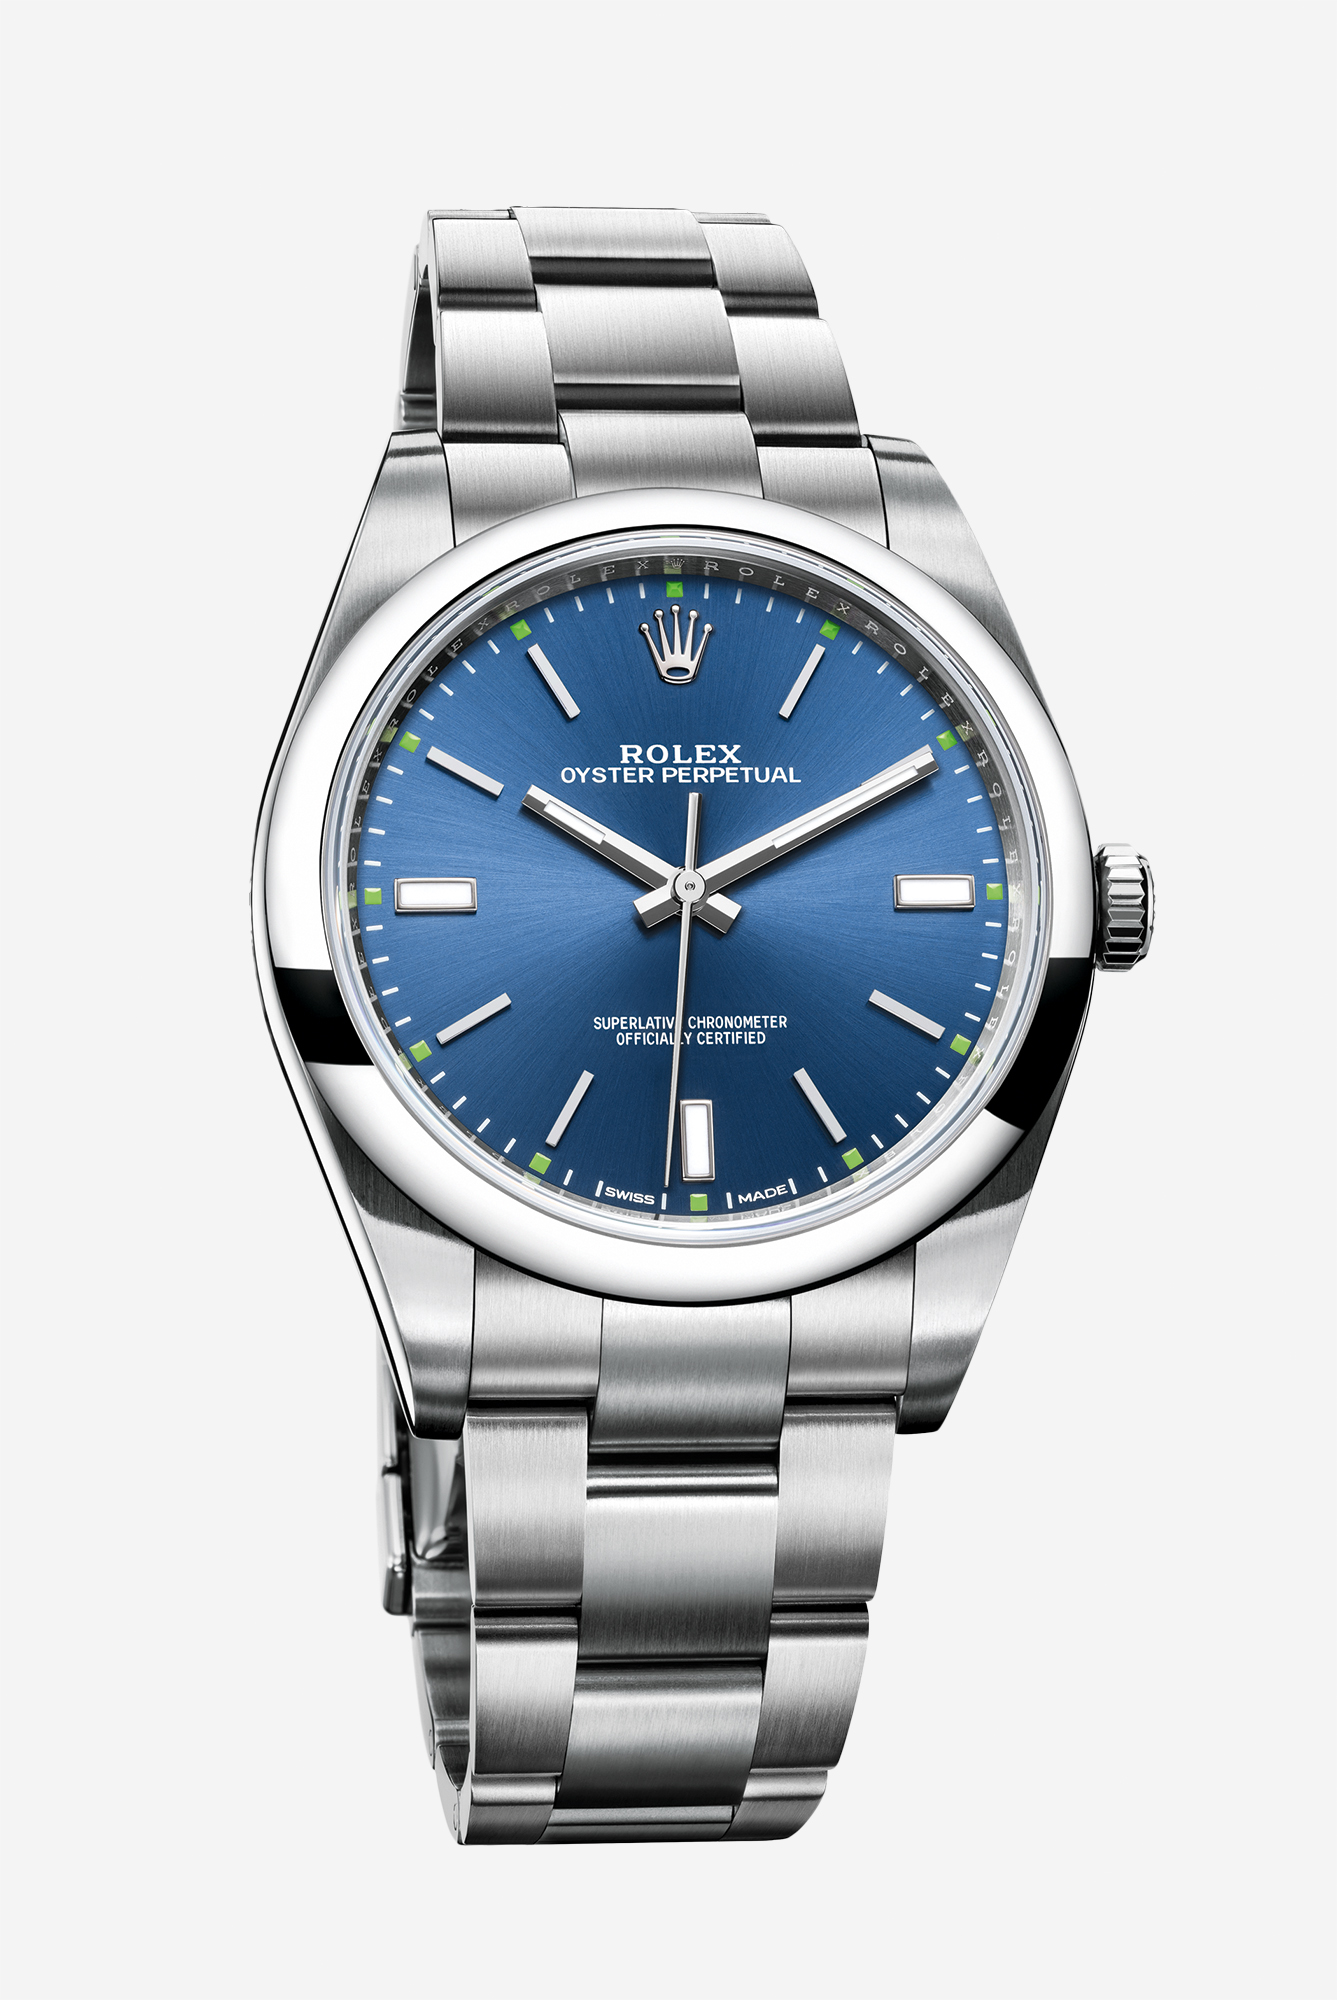 Rolex's iconic Oyster lends inspiration for their awards for those who make the world a better place